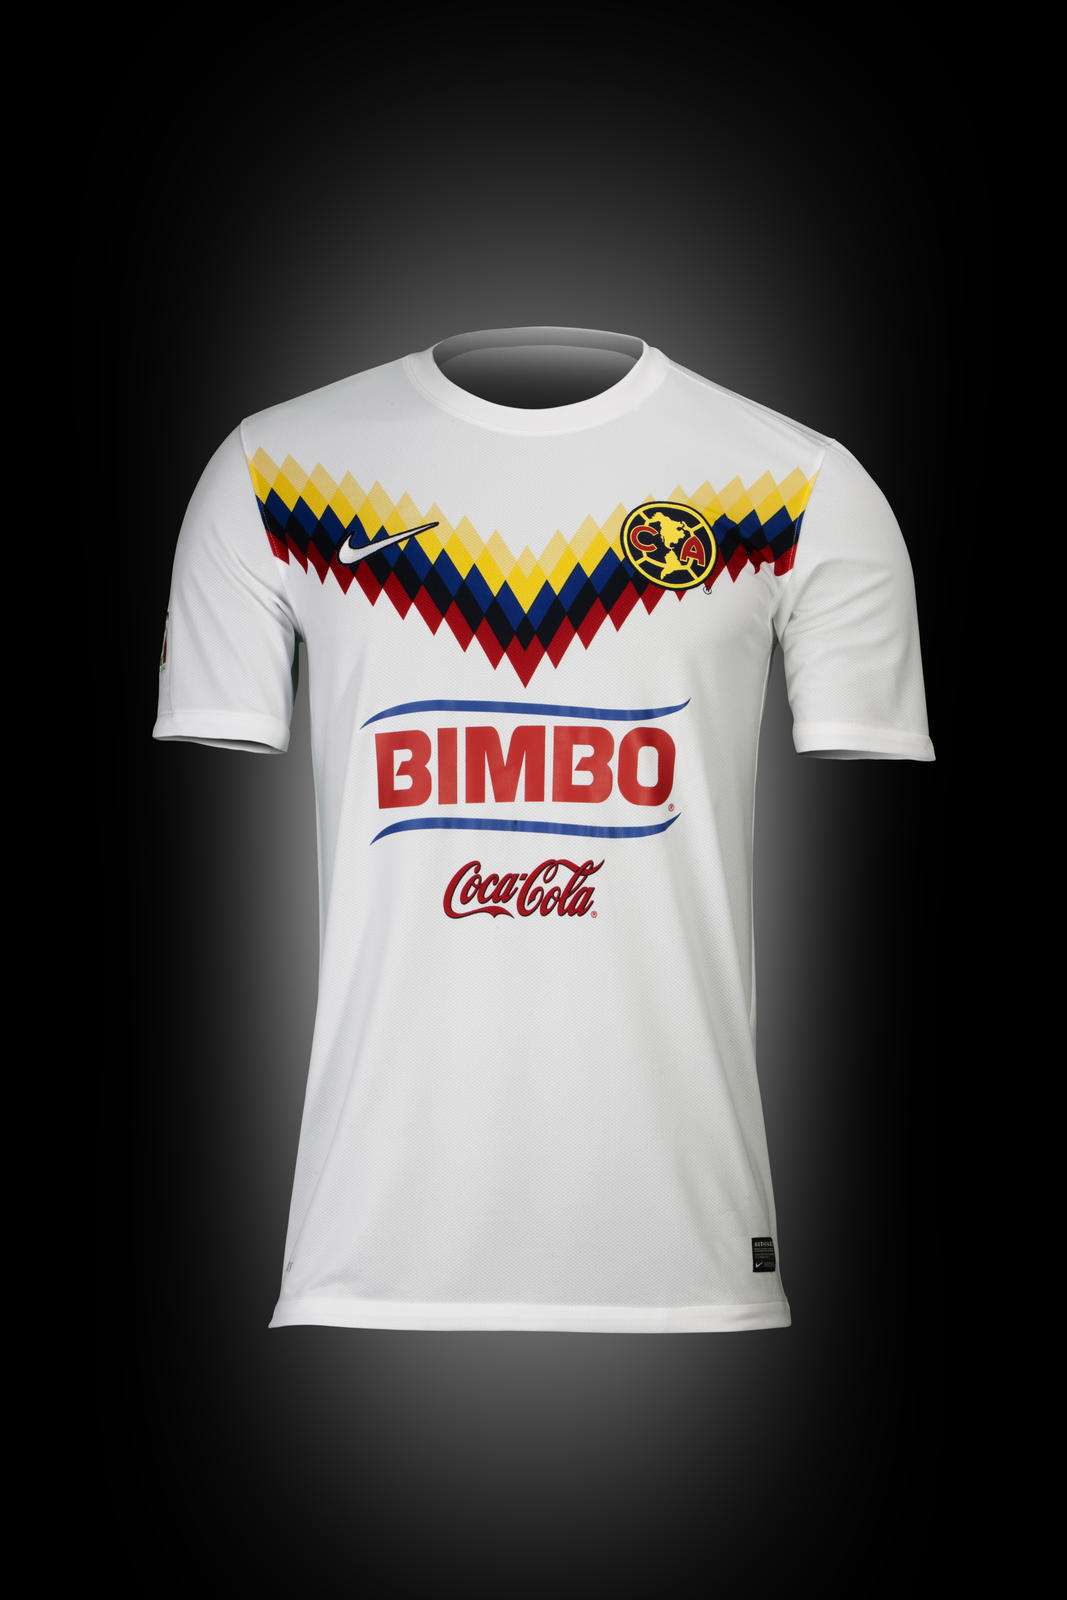 new club am233rica kits capture teams heritage and passion